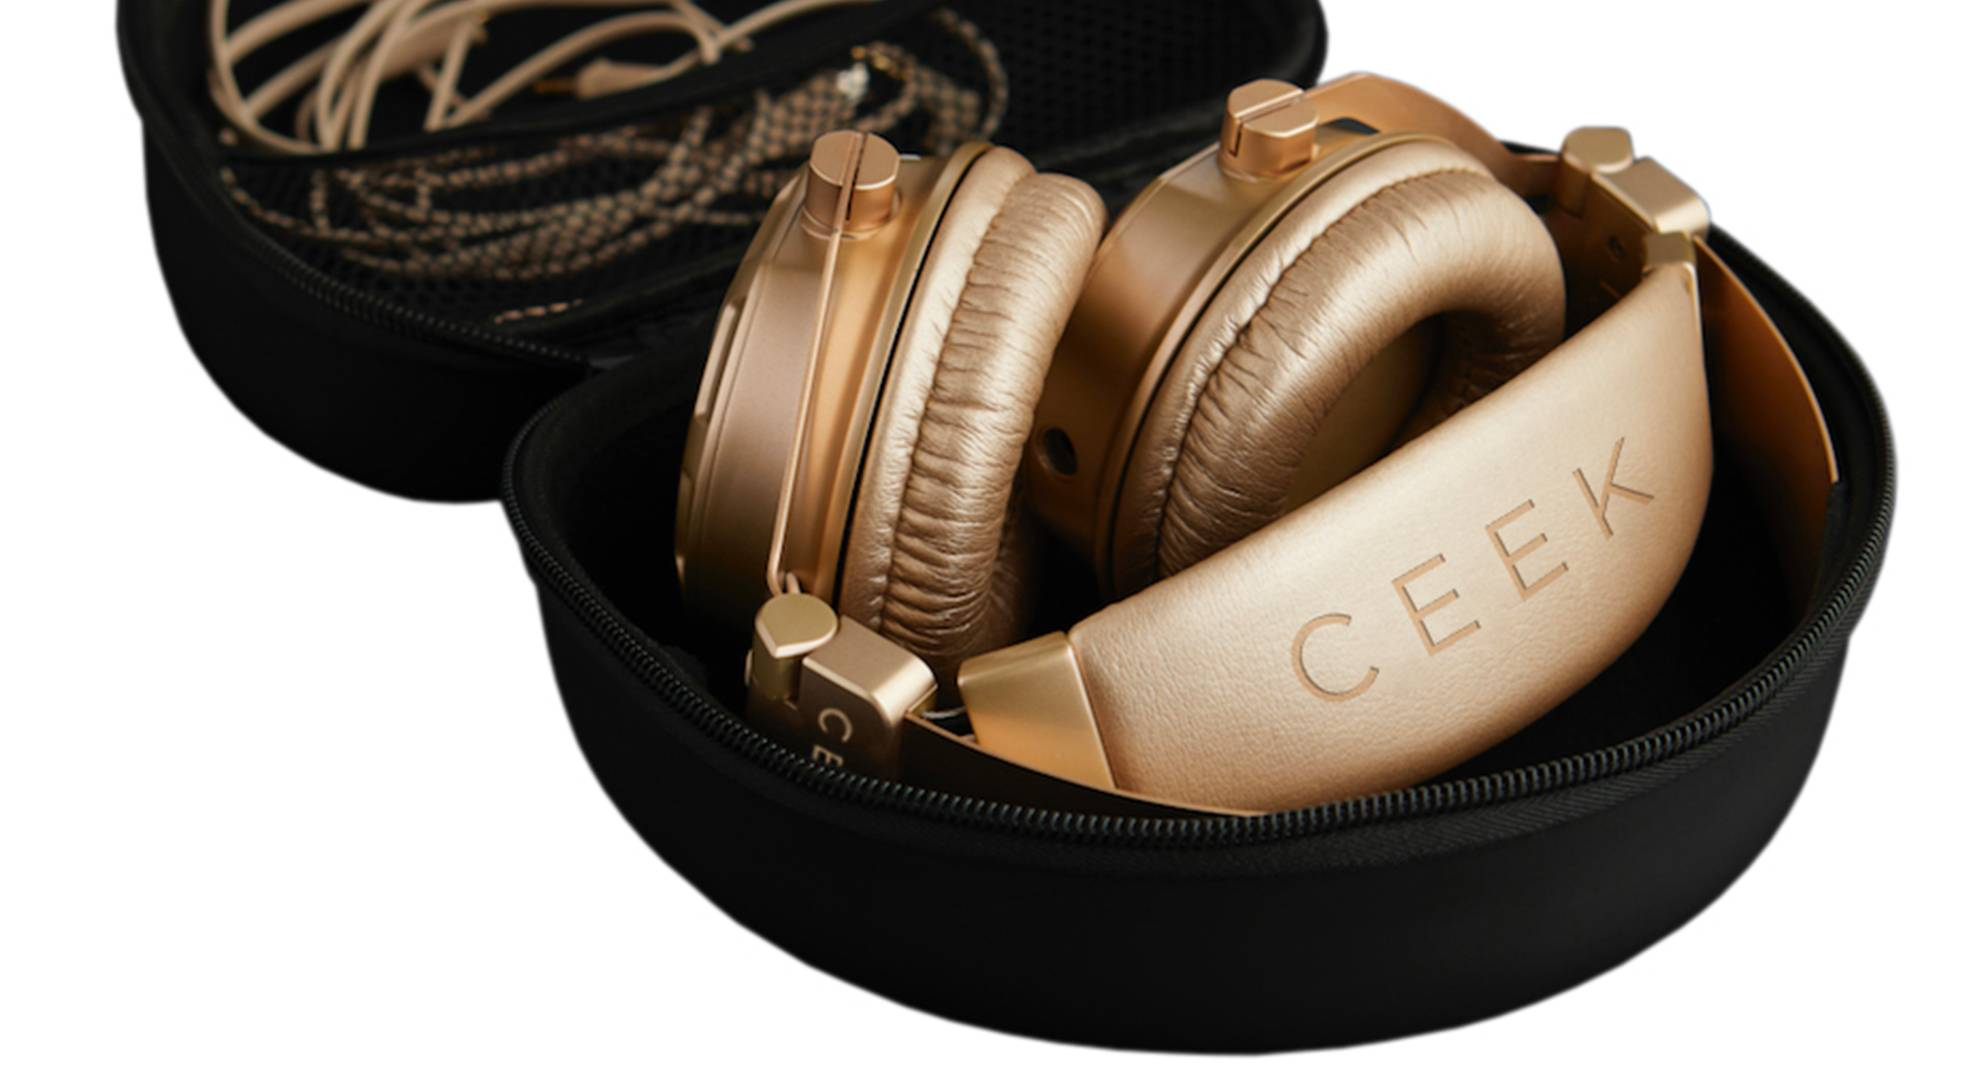 ceek vr headphones